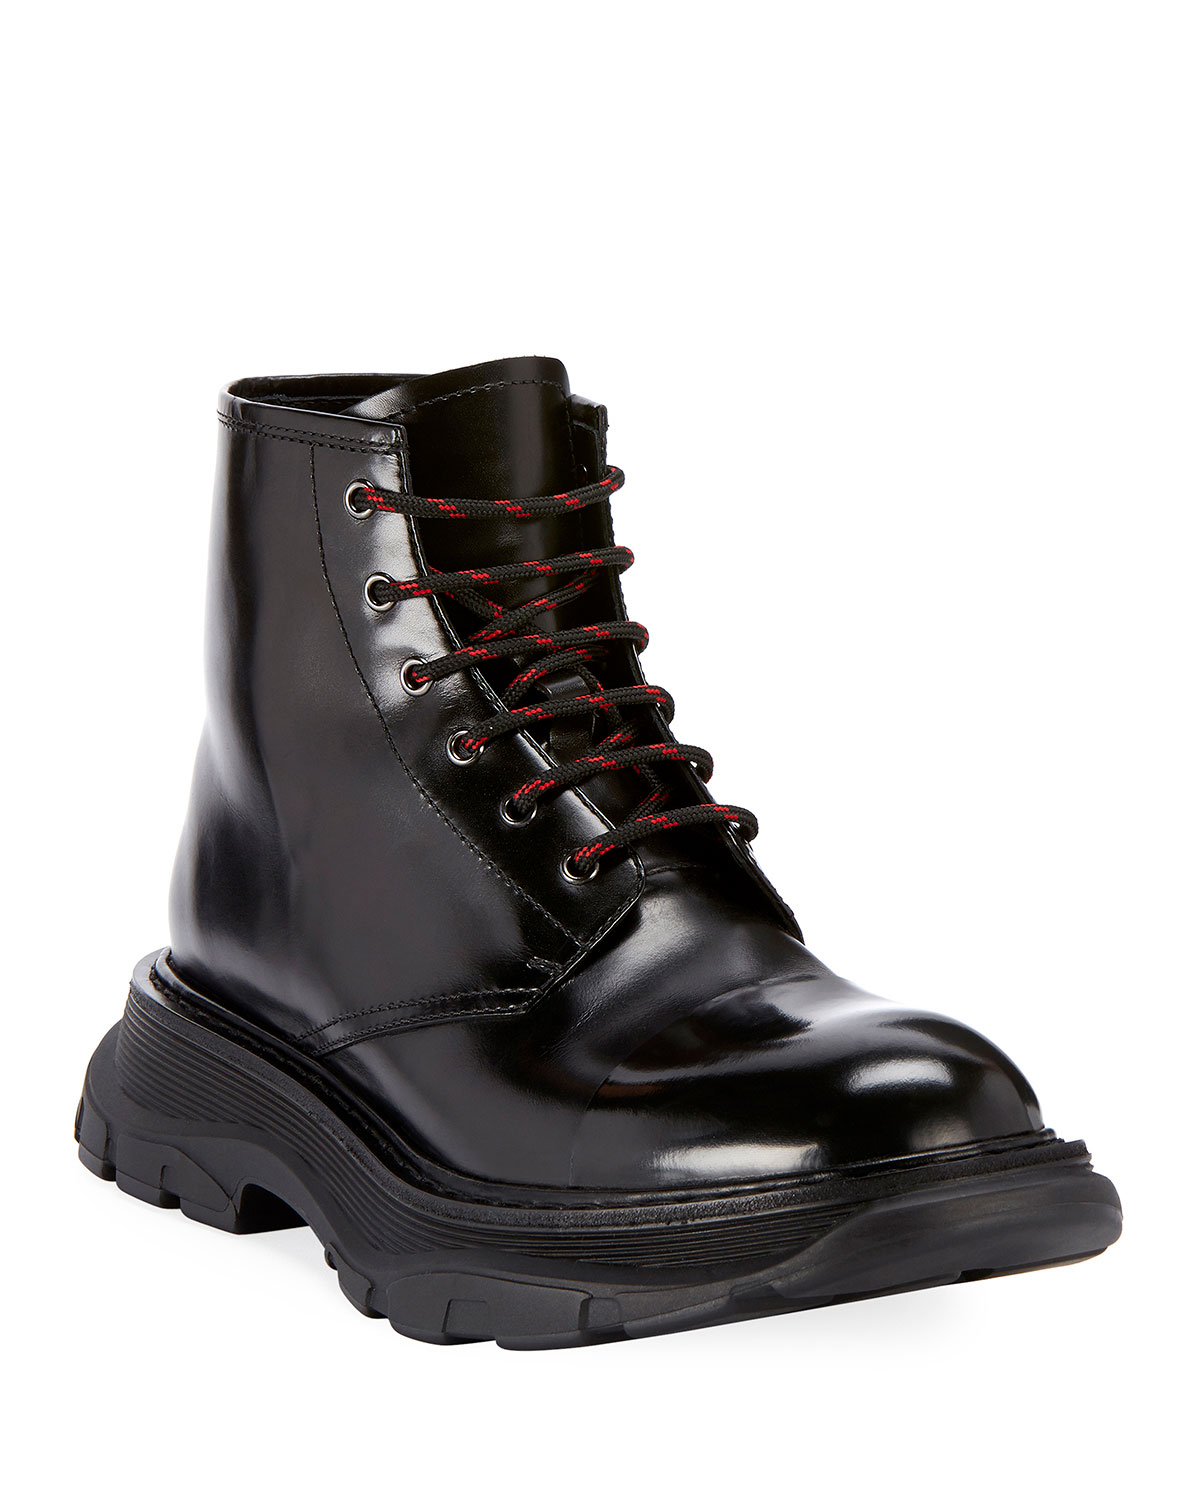 8f74546467f Men's Leather Lace-Up Combat Boots with Thick Rubber Sole